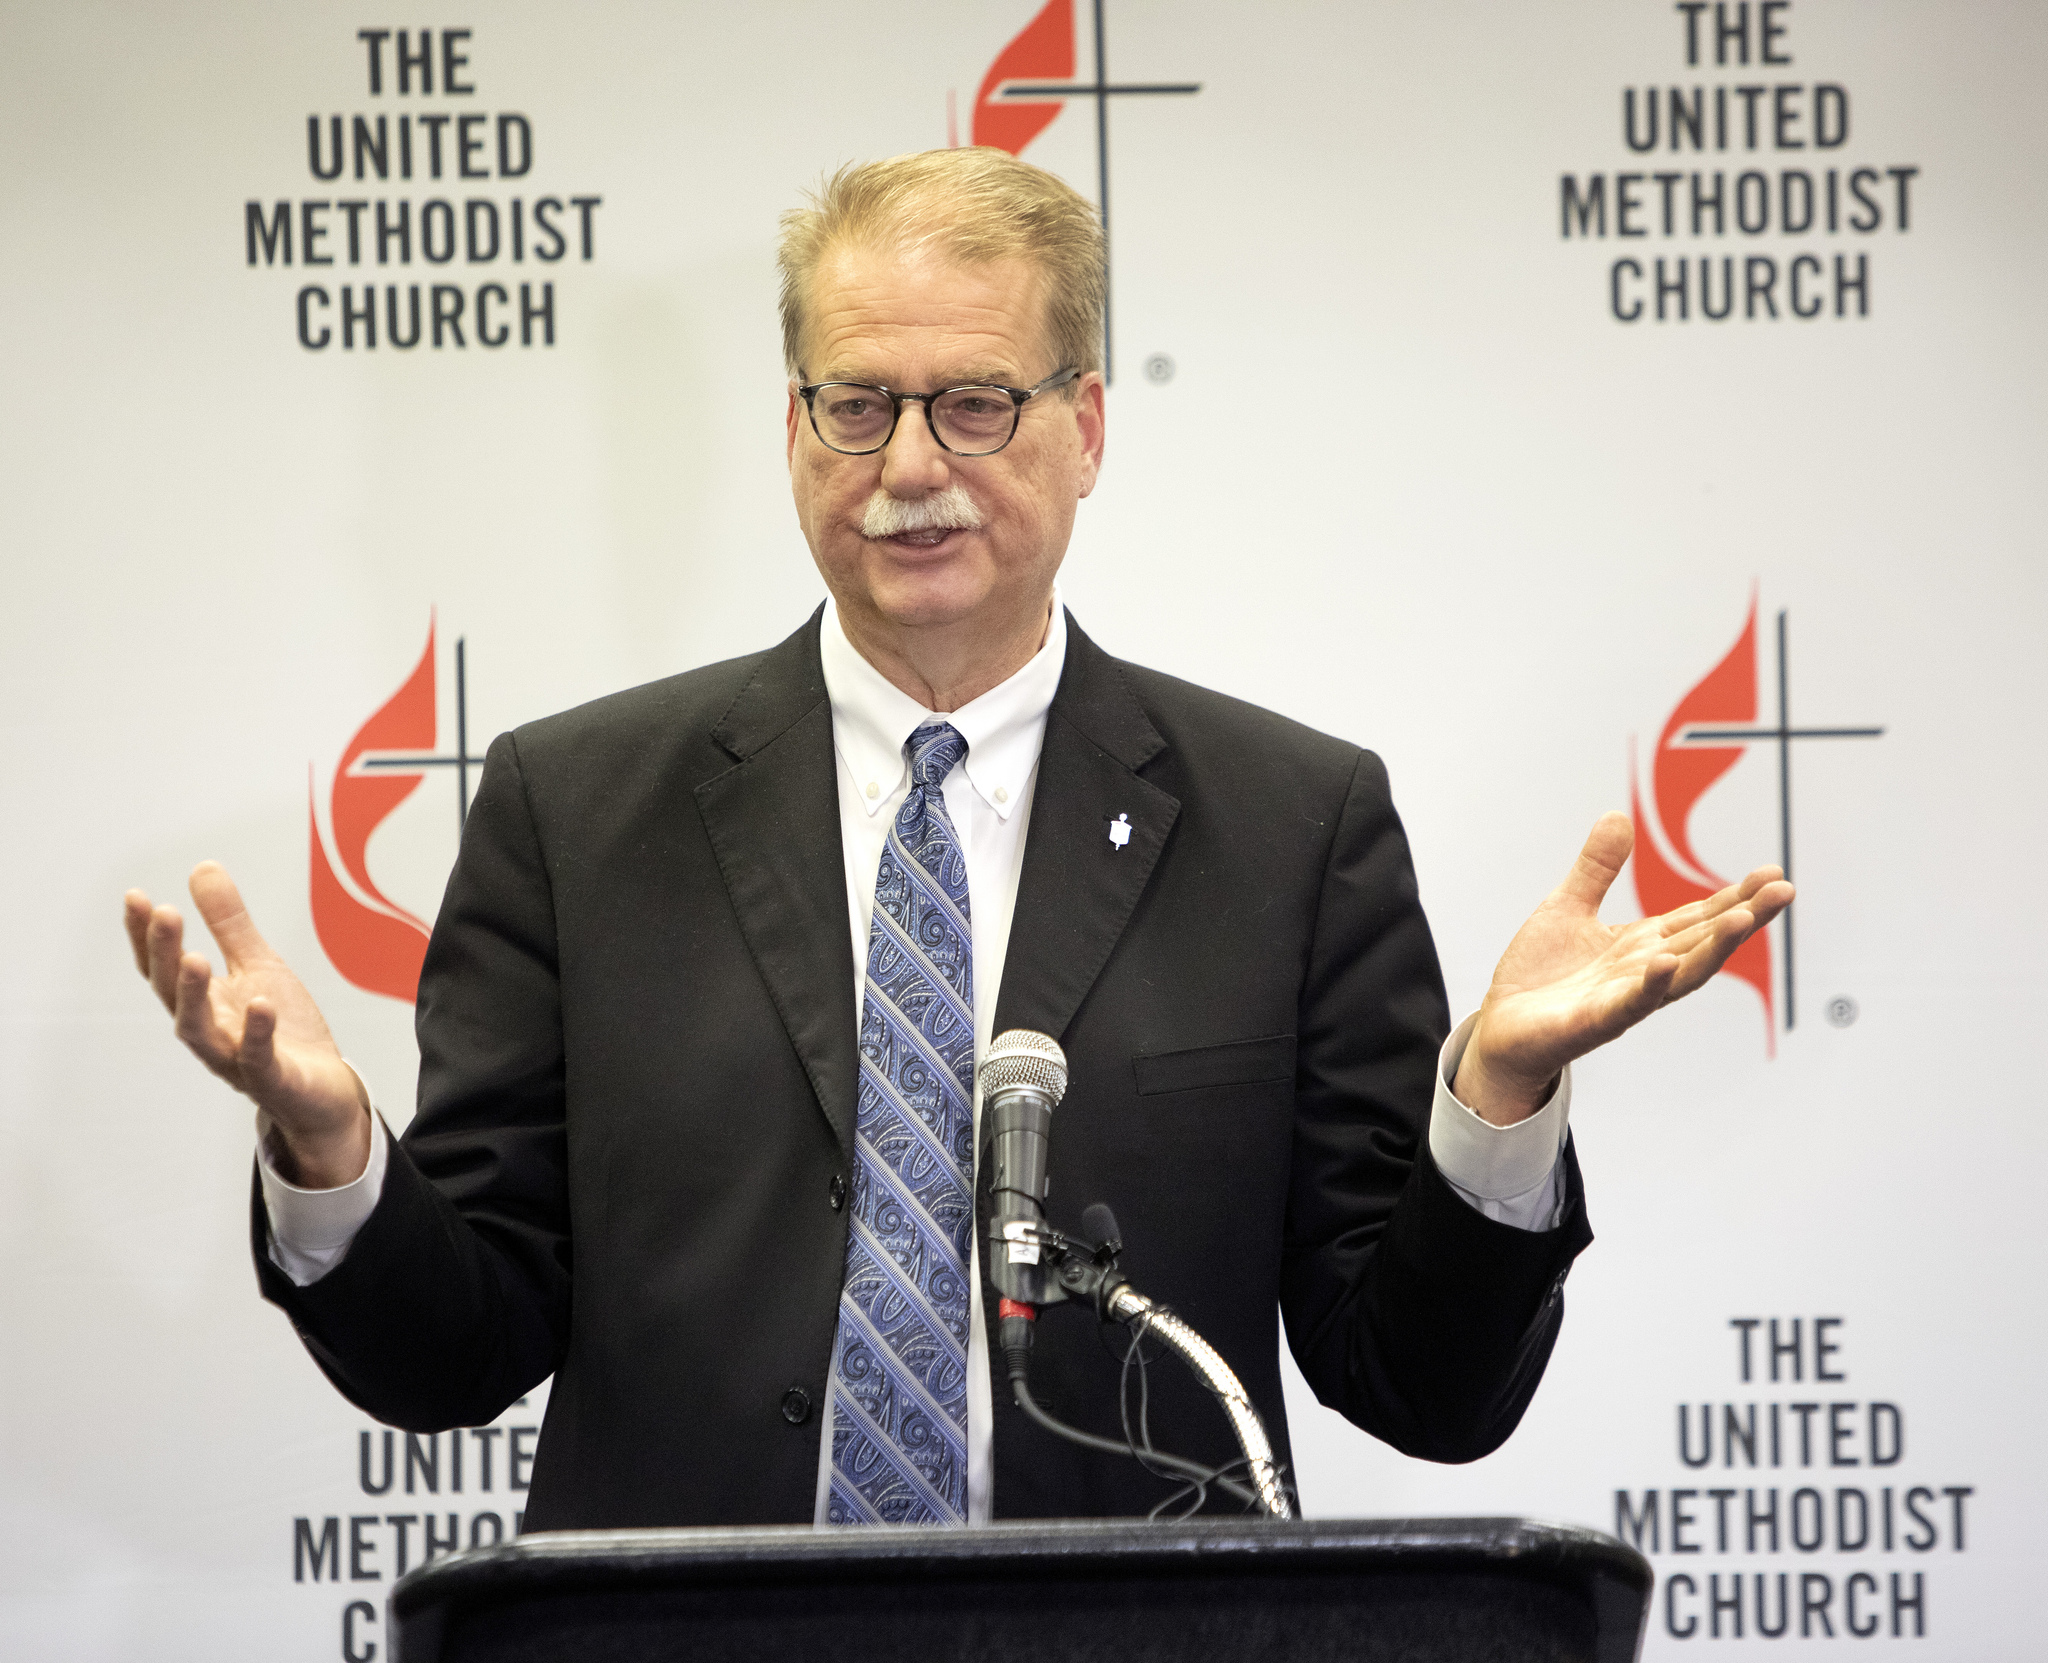 Bishop Kenneth H. Carter, president of the Council of Bishops, speaks to the press following the conclusion of the 2019 United Methodist General Conference in St. Louis. Photo by Kathleen Barry, UMNS.